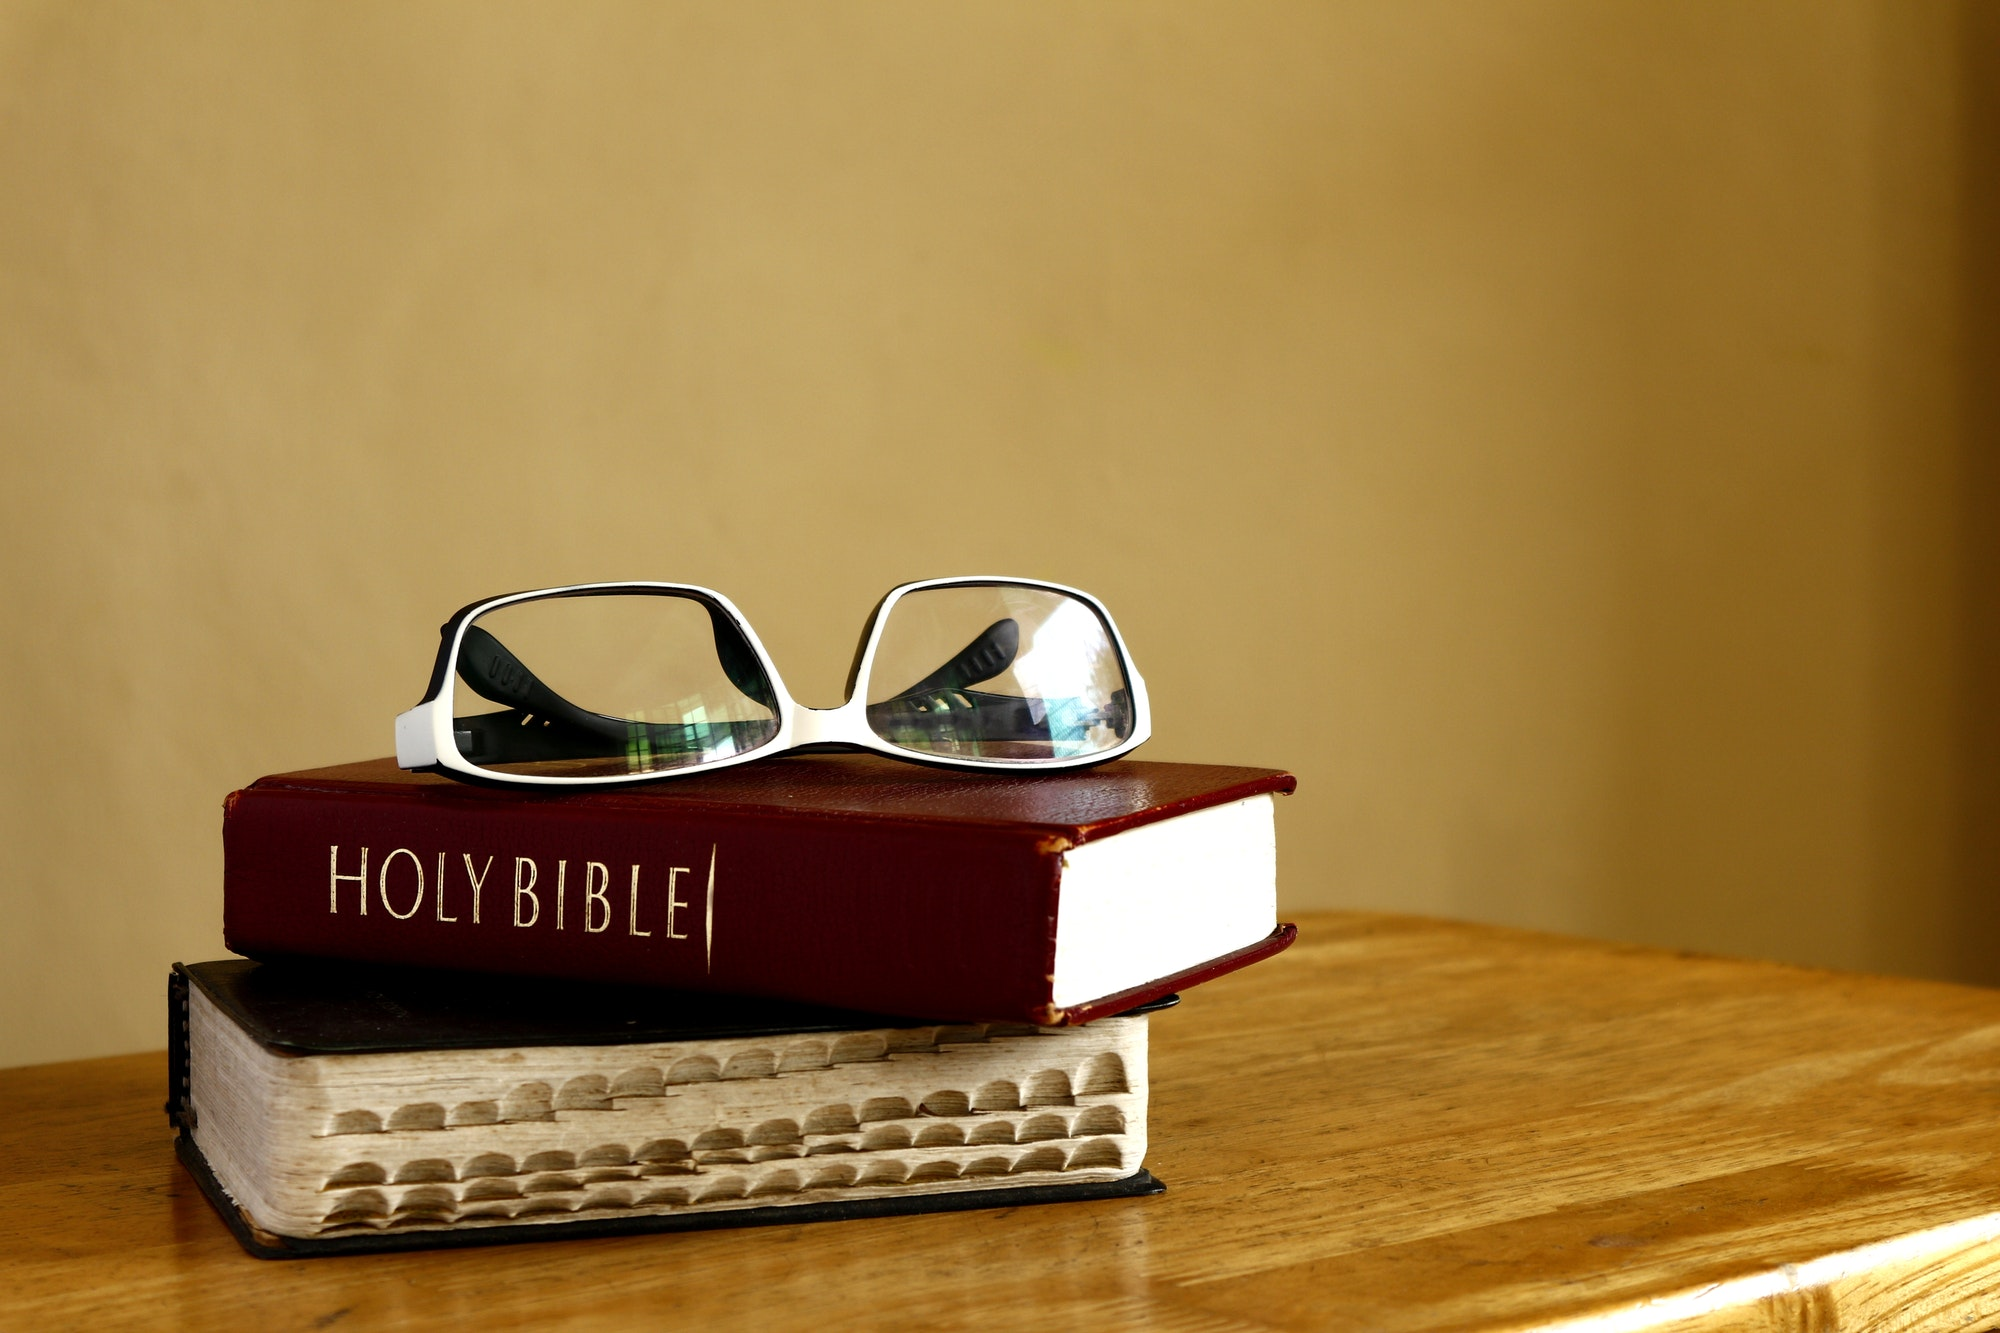 Holy Bibles and eyeglasses on a table